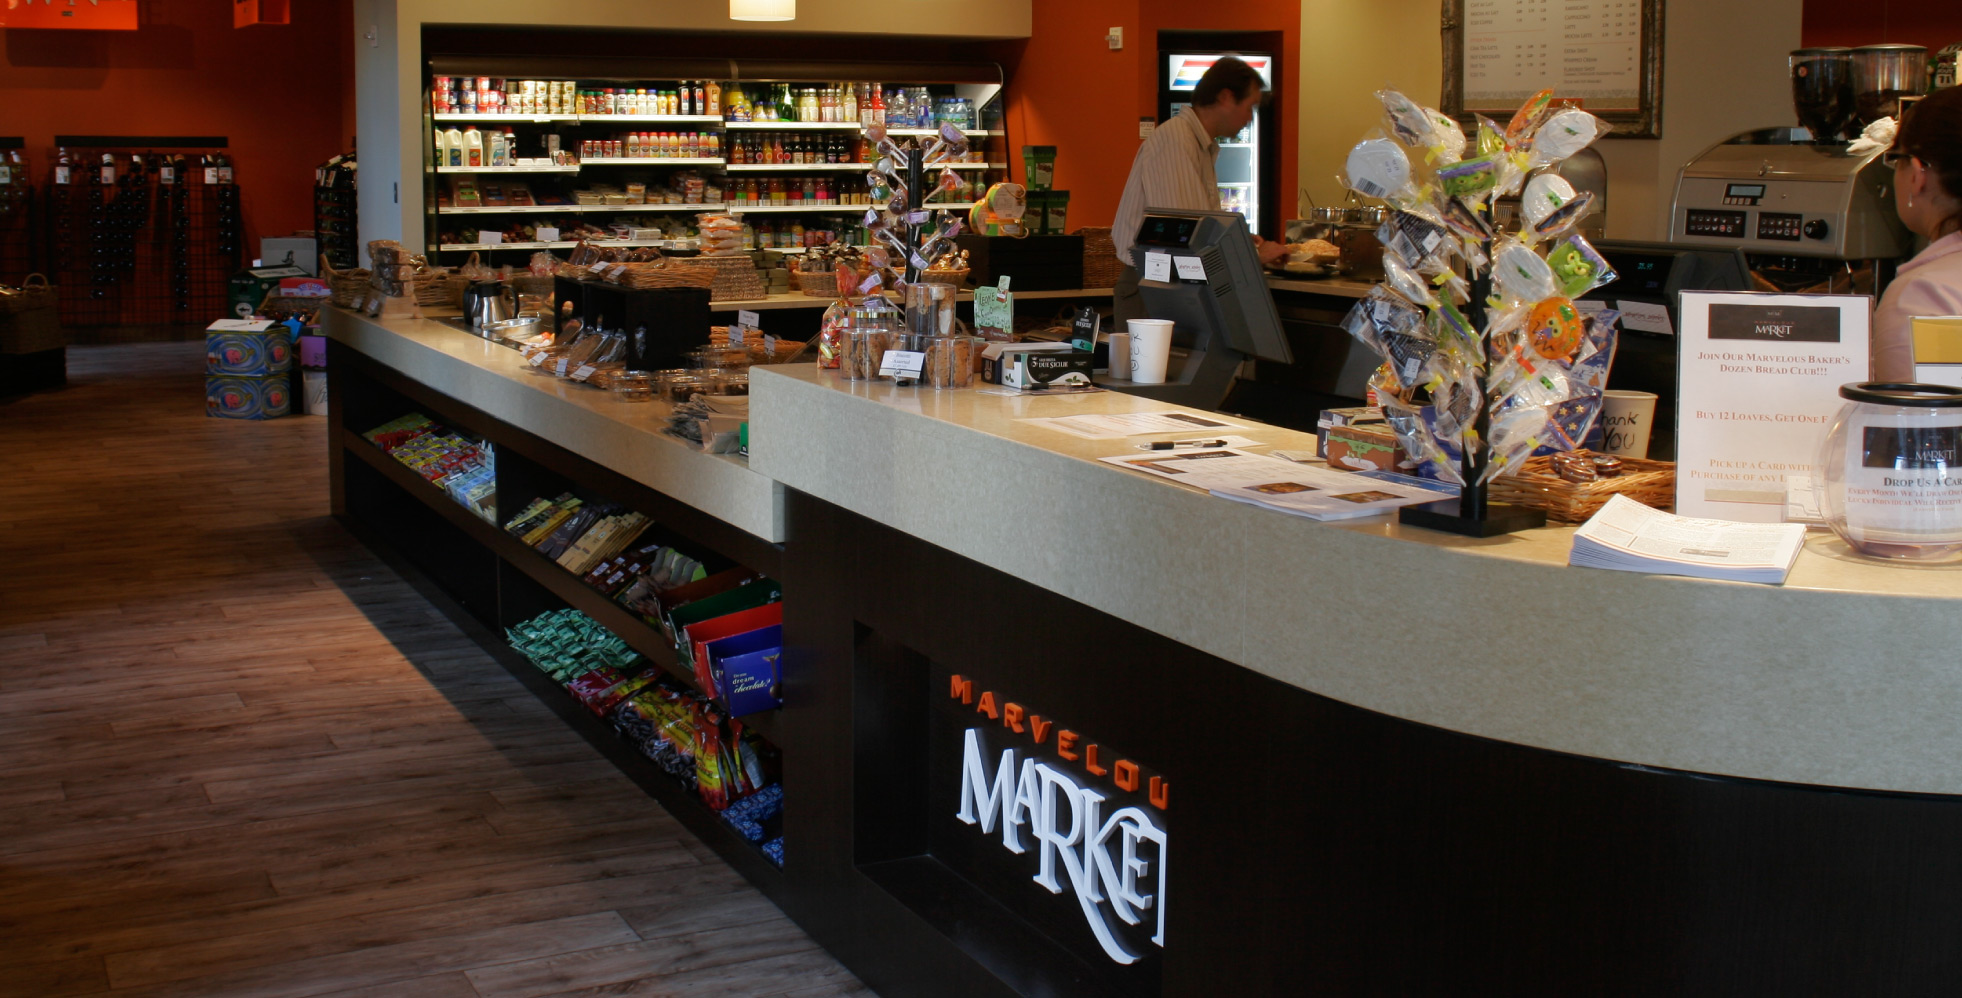 Maravelous Market Bakery and Store Design